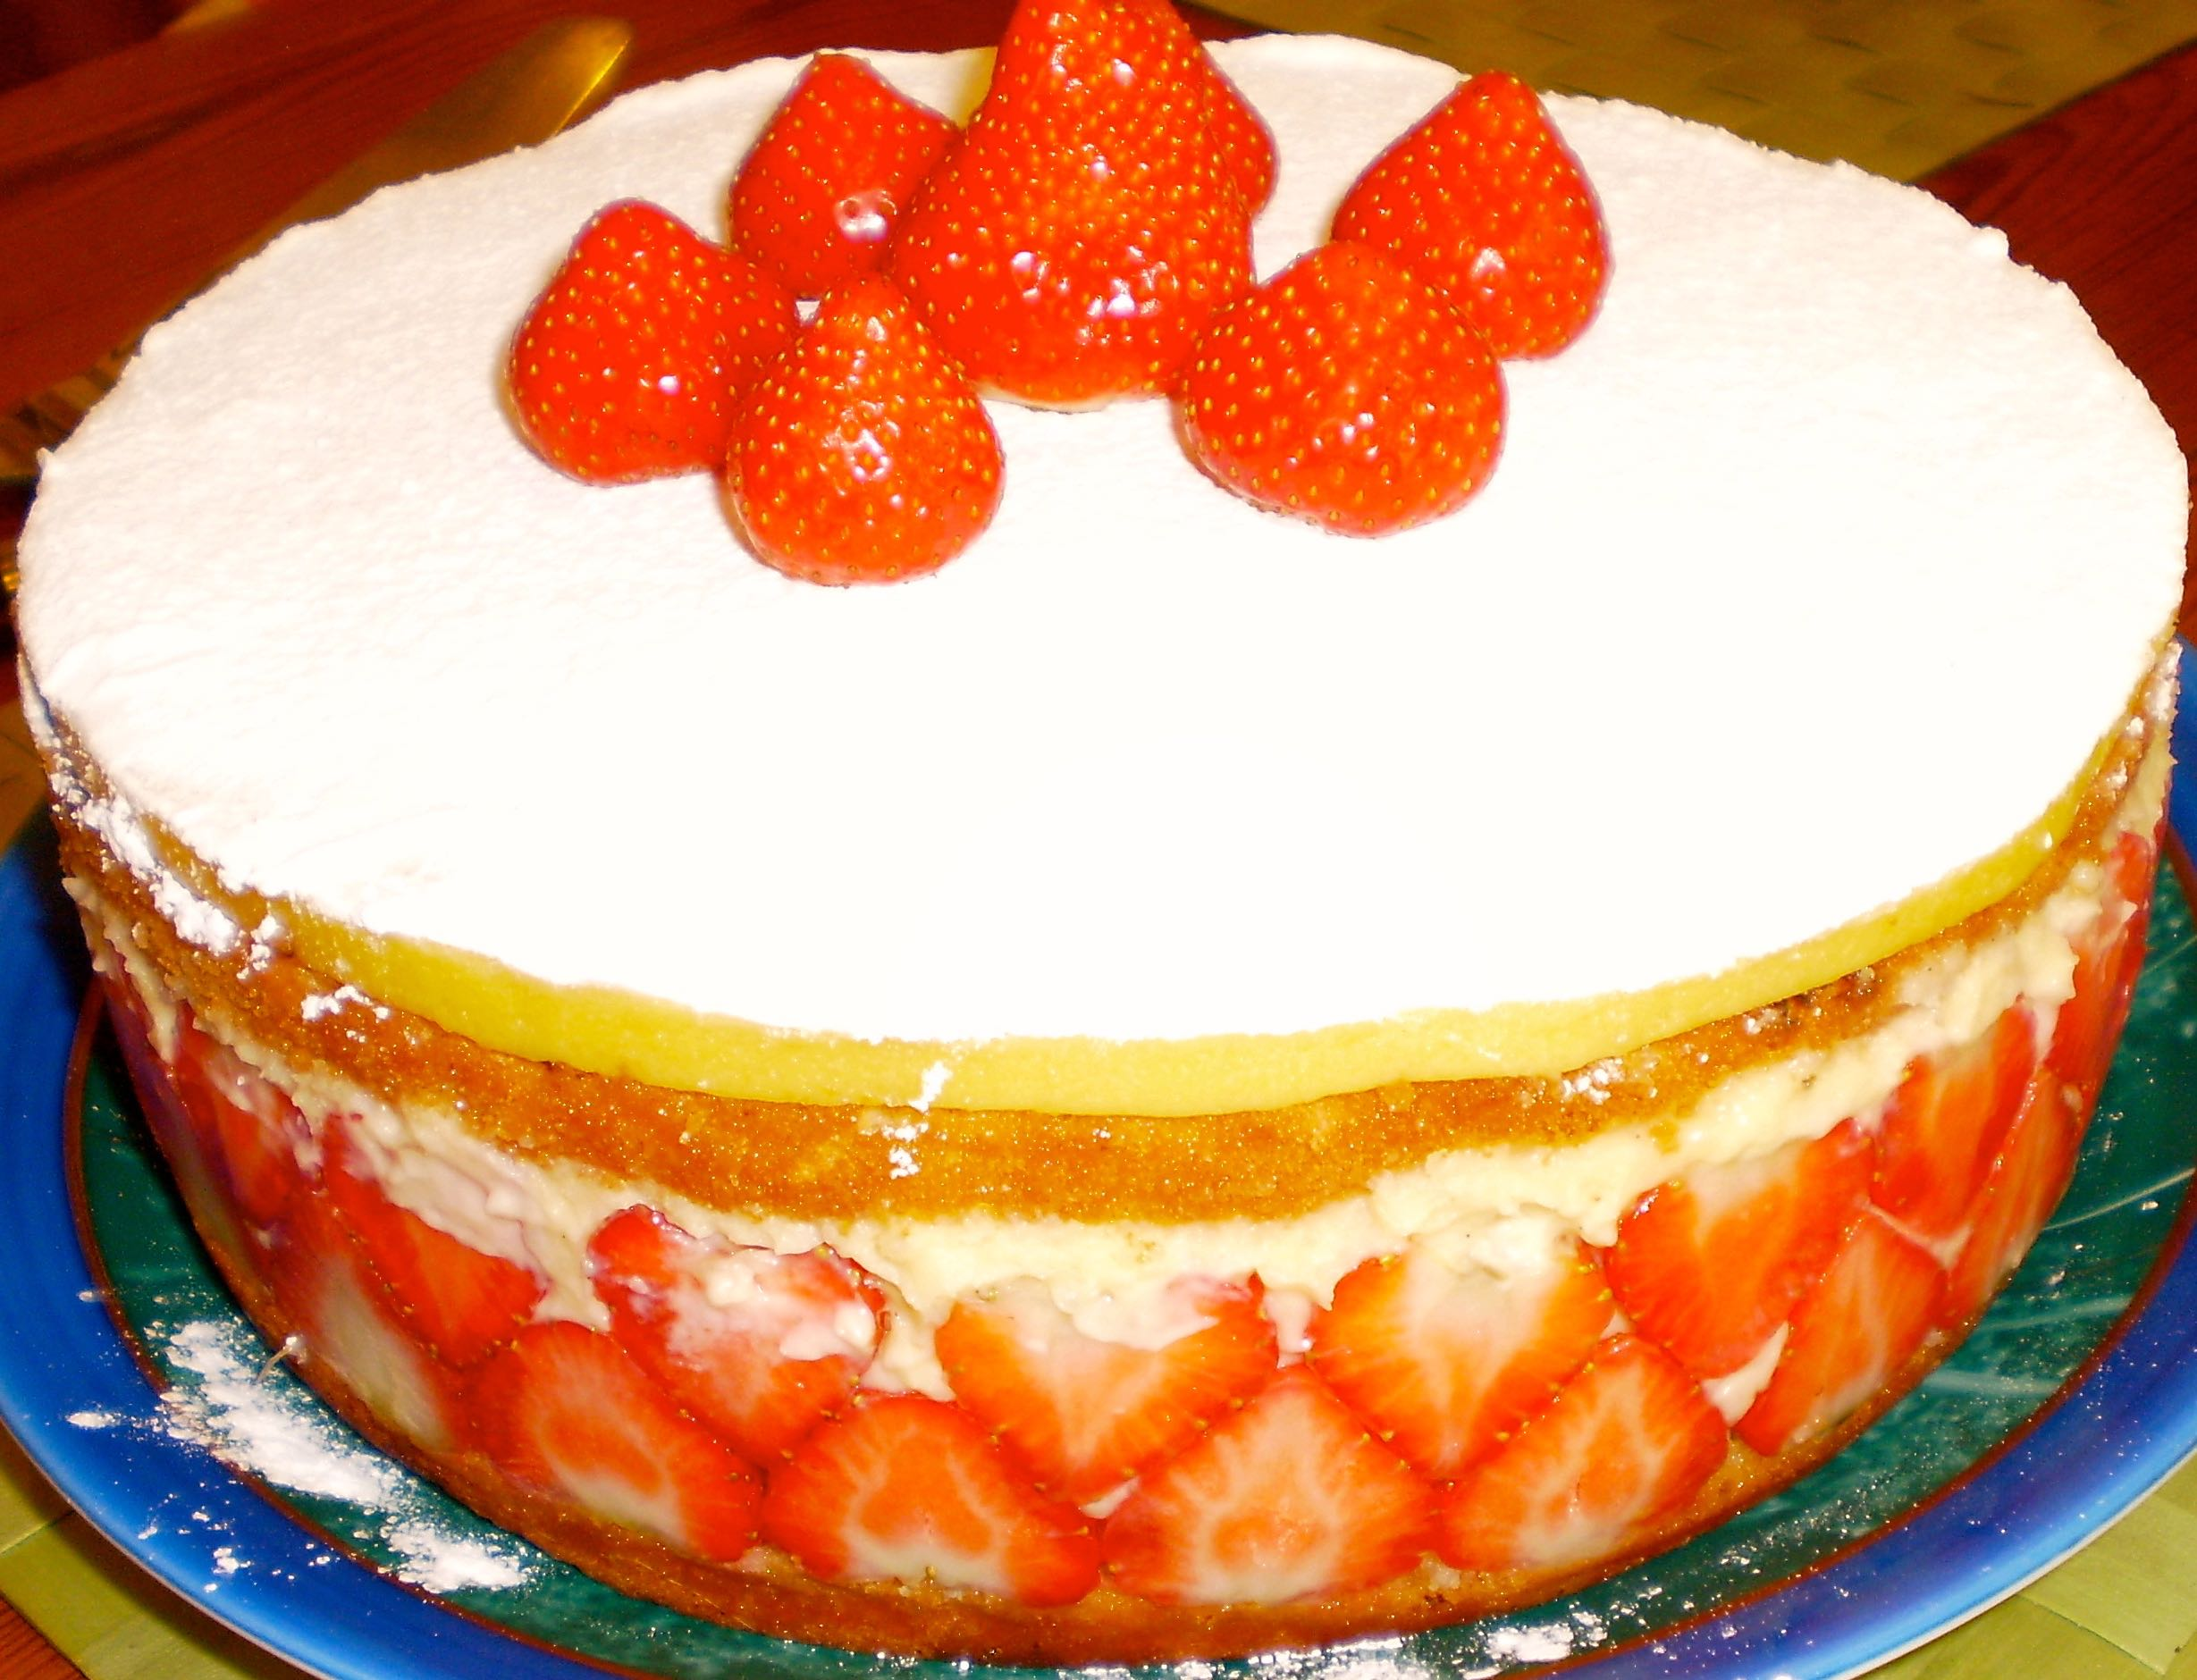 image of a fraisier - French Strawberry Cake